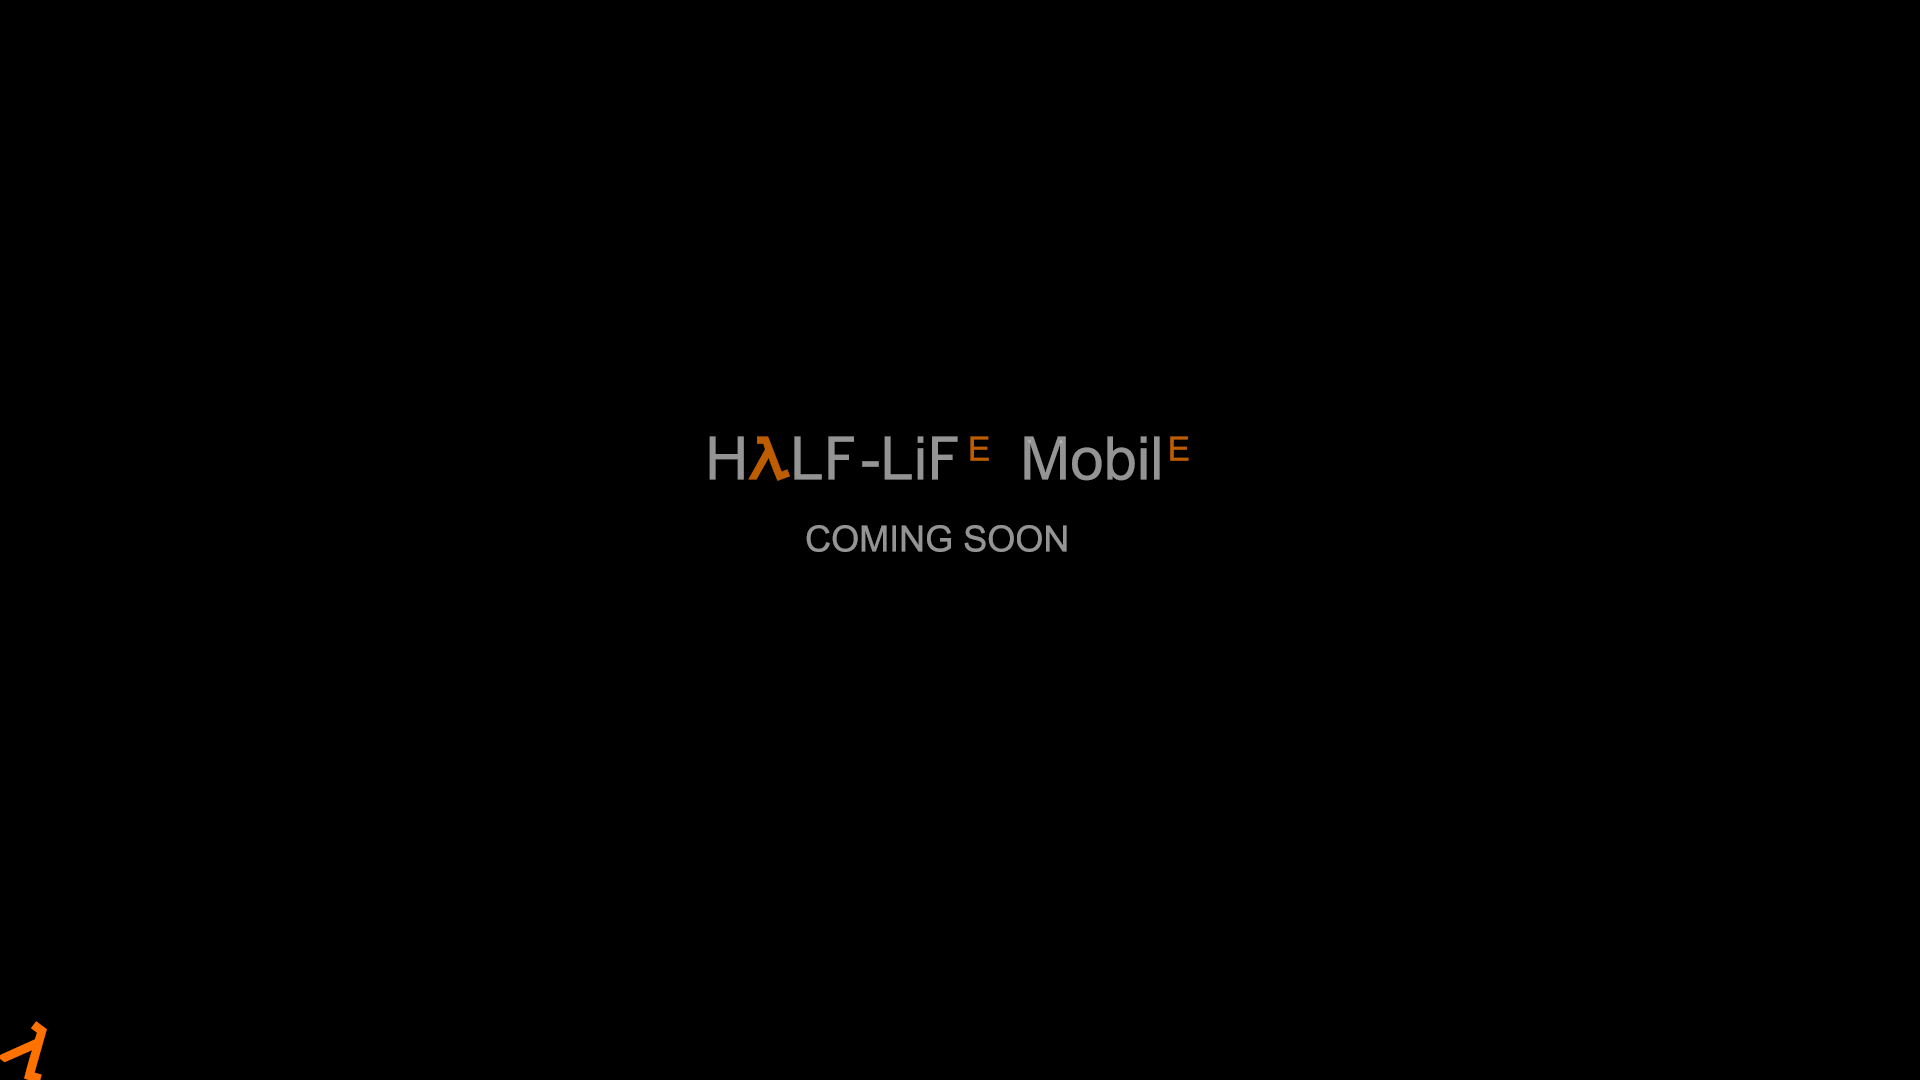 Half-Life Mobile Mobile, iOS, iPad, Android, AndroidTab game